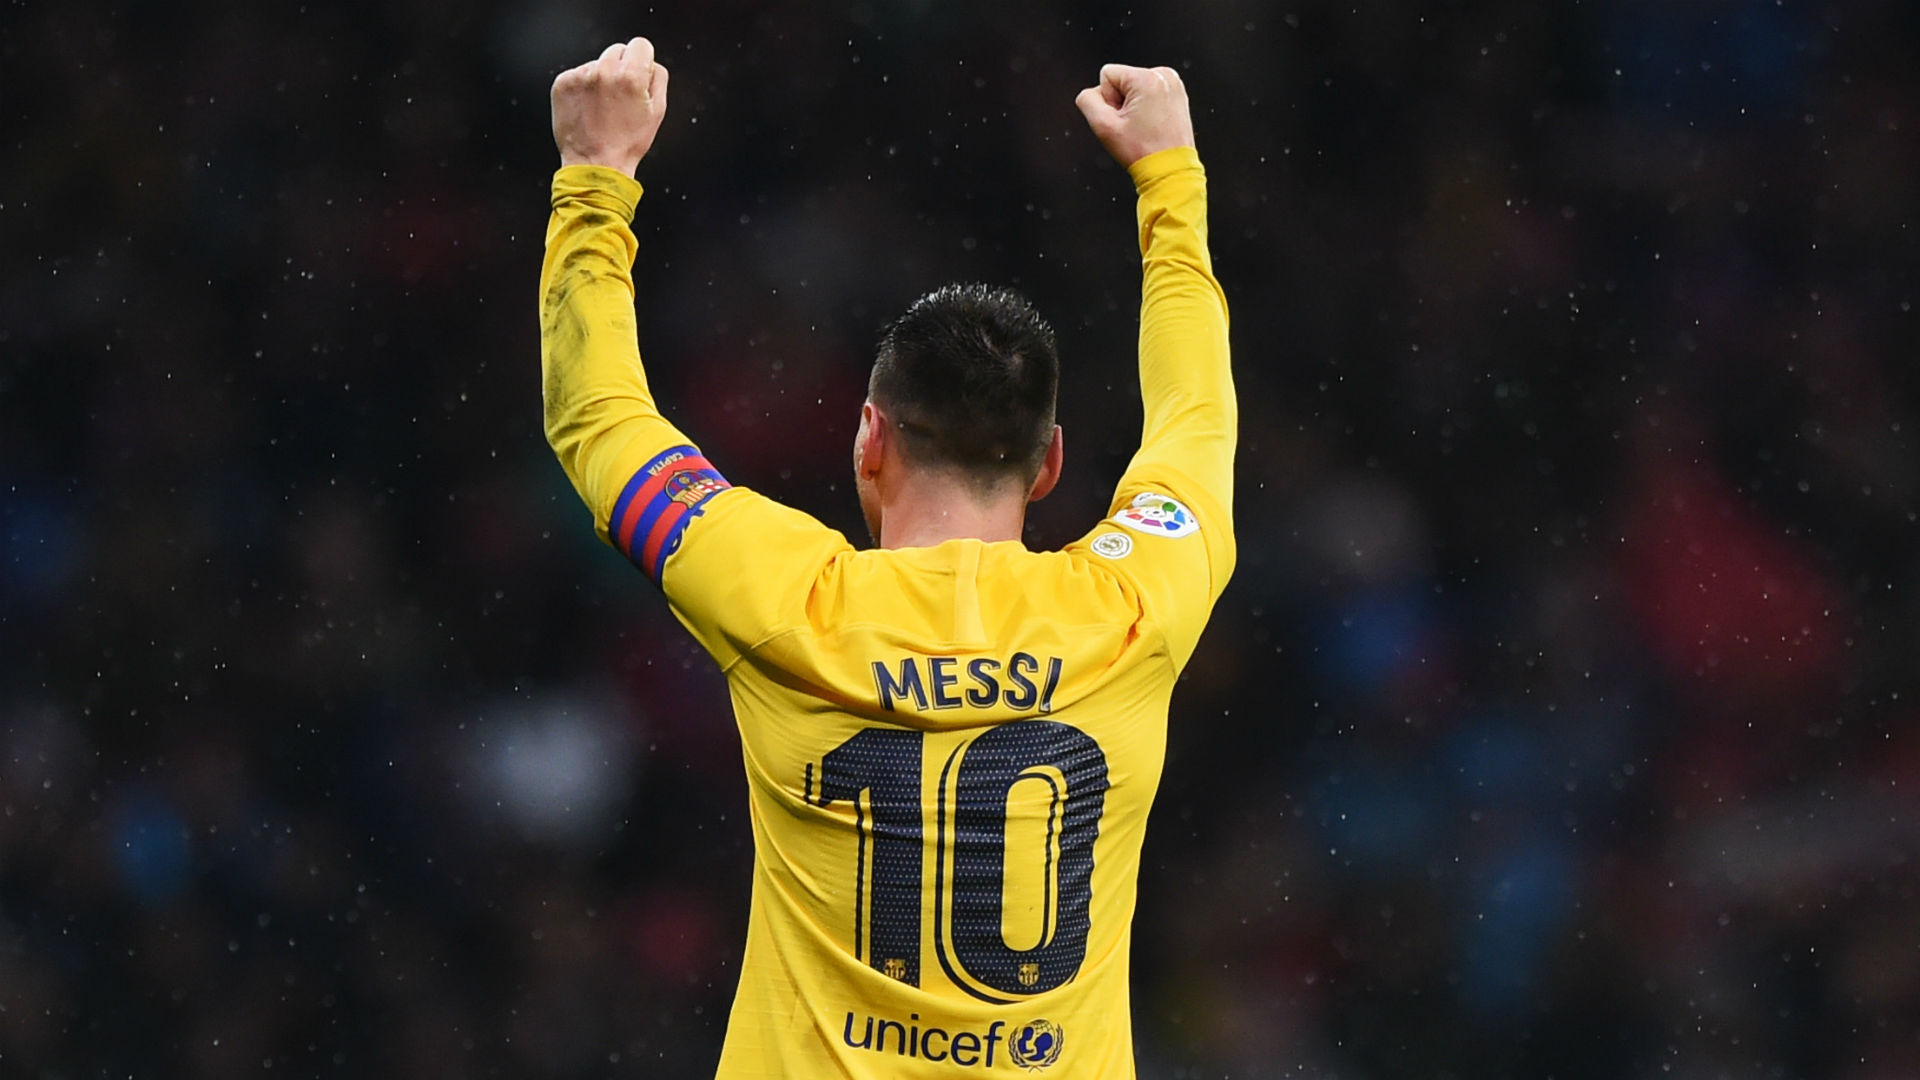 Messi will finish his career at Camp Nou, says Barca boss Setien